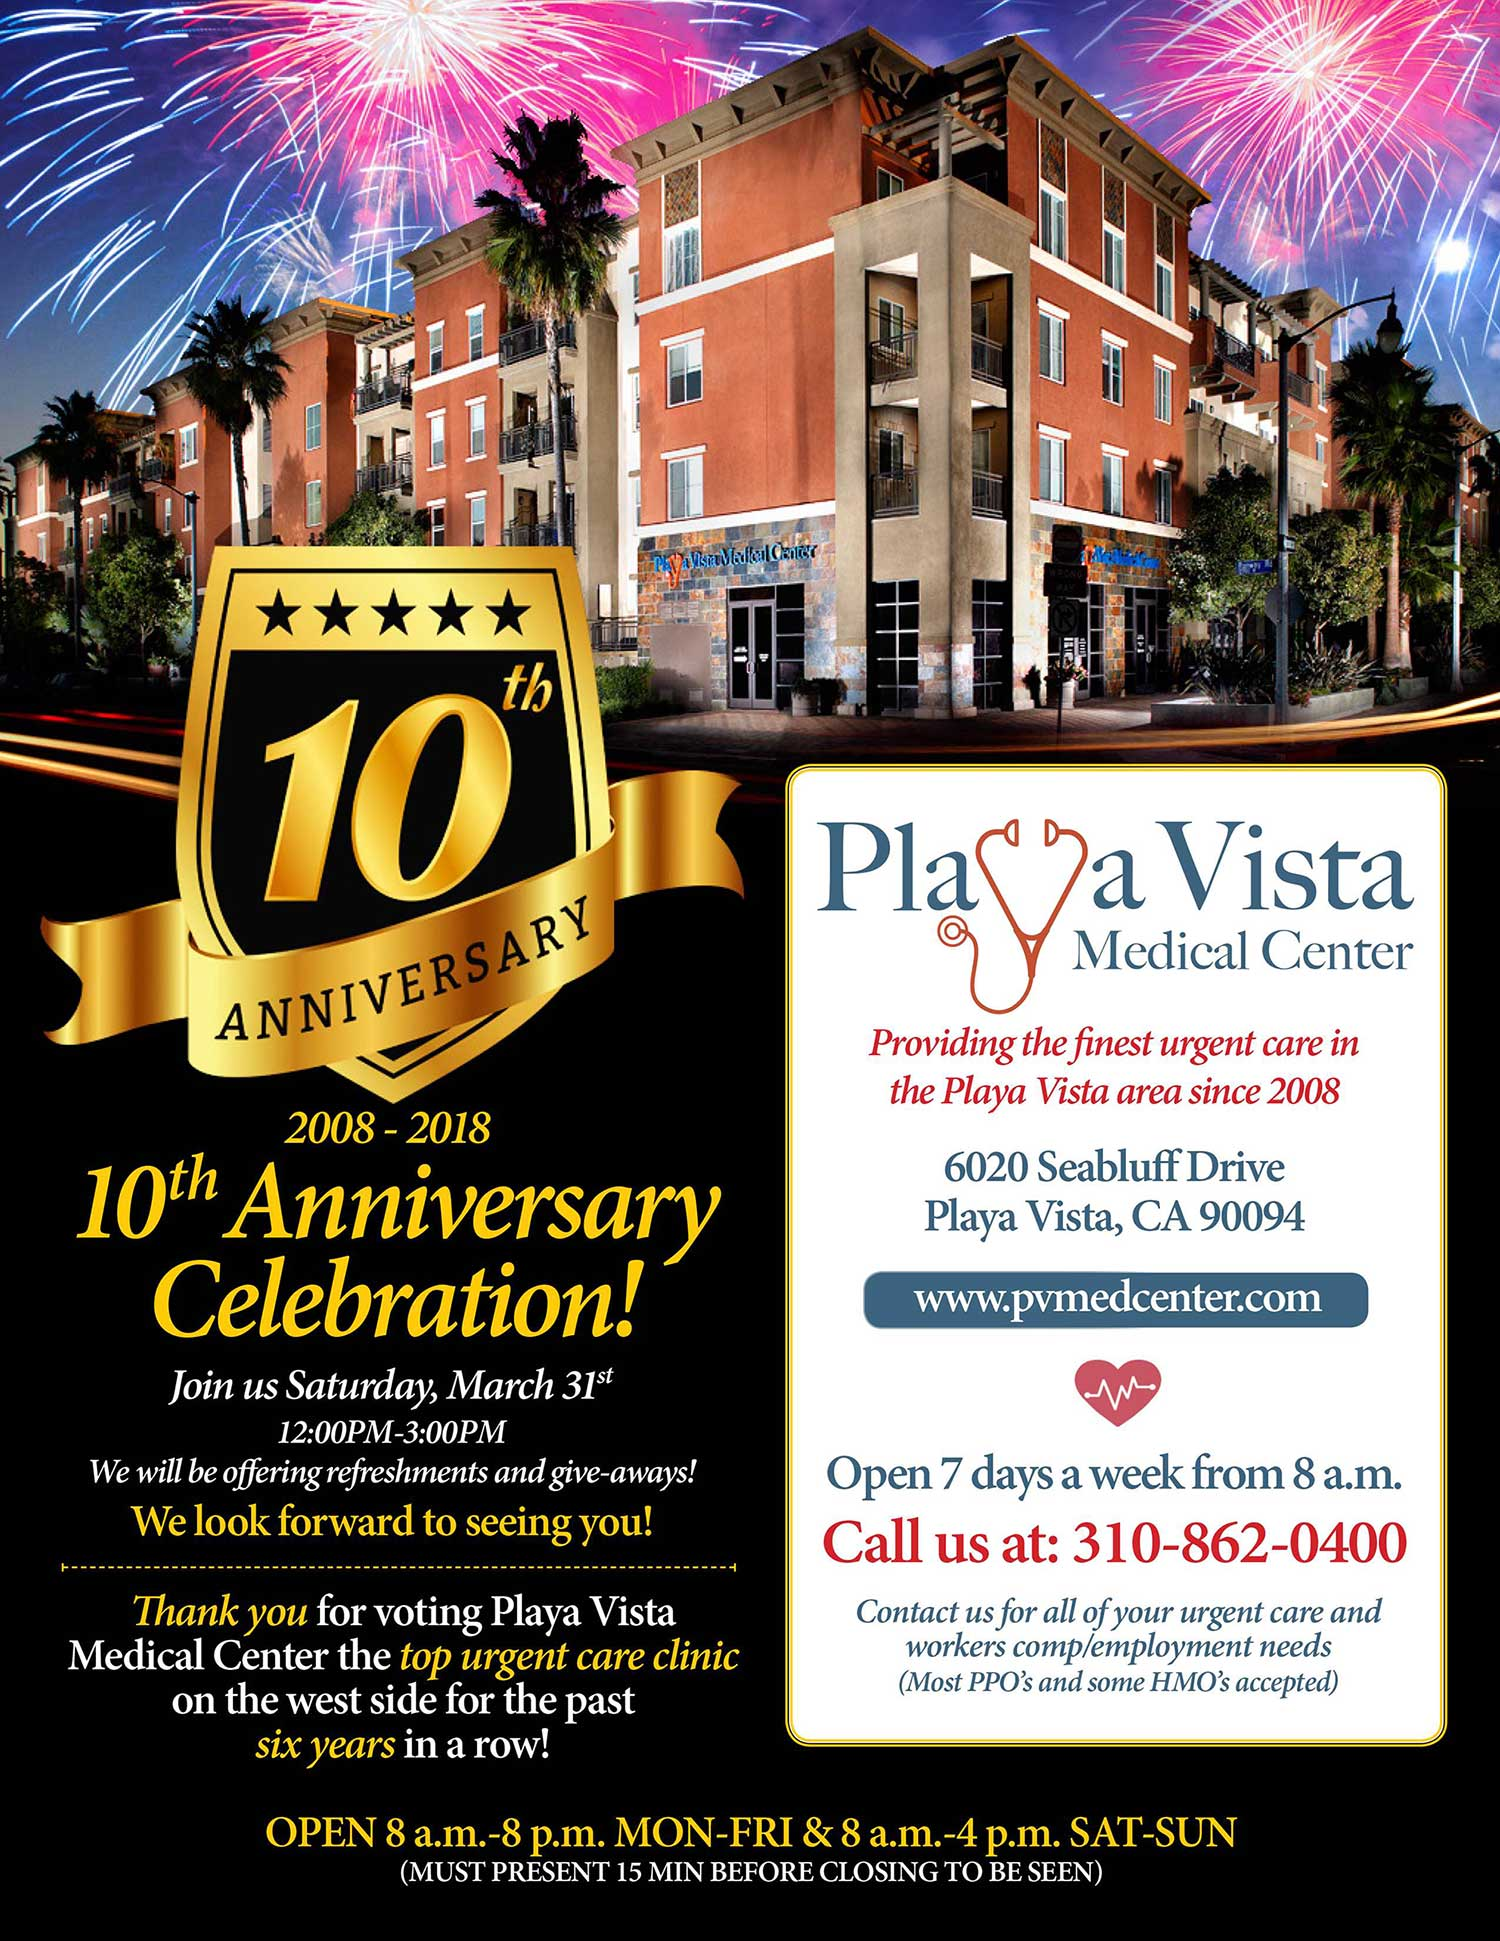 Playa Vista 10th Anniversary Flyer March 31st from 12pm - 3pm